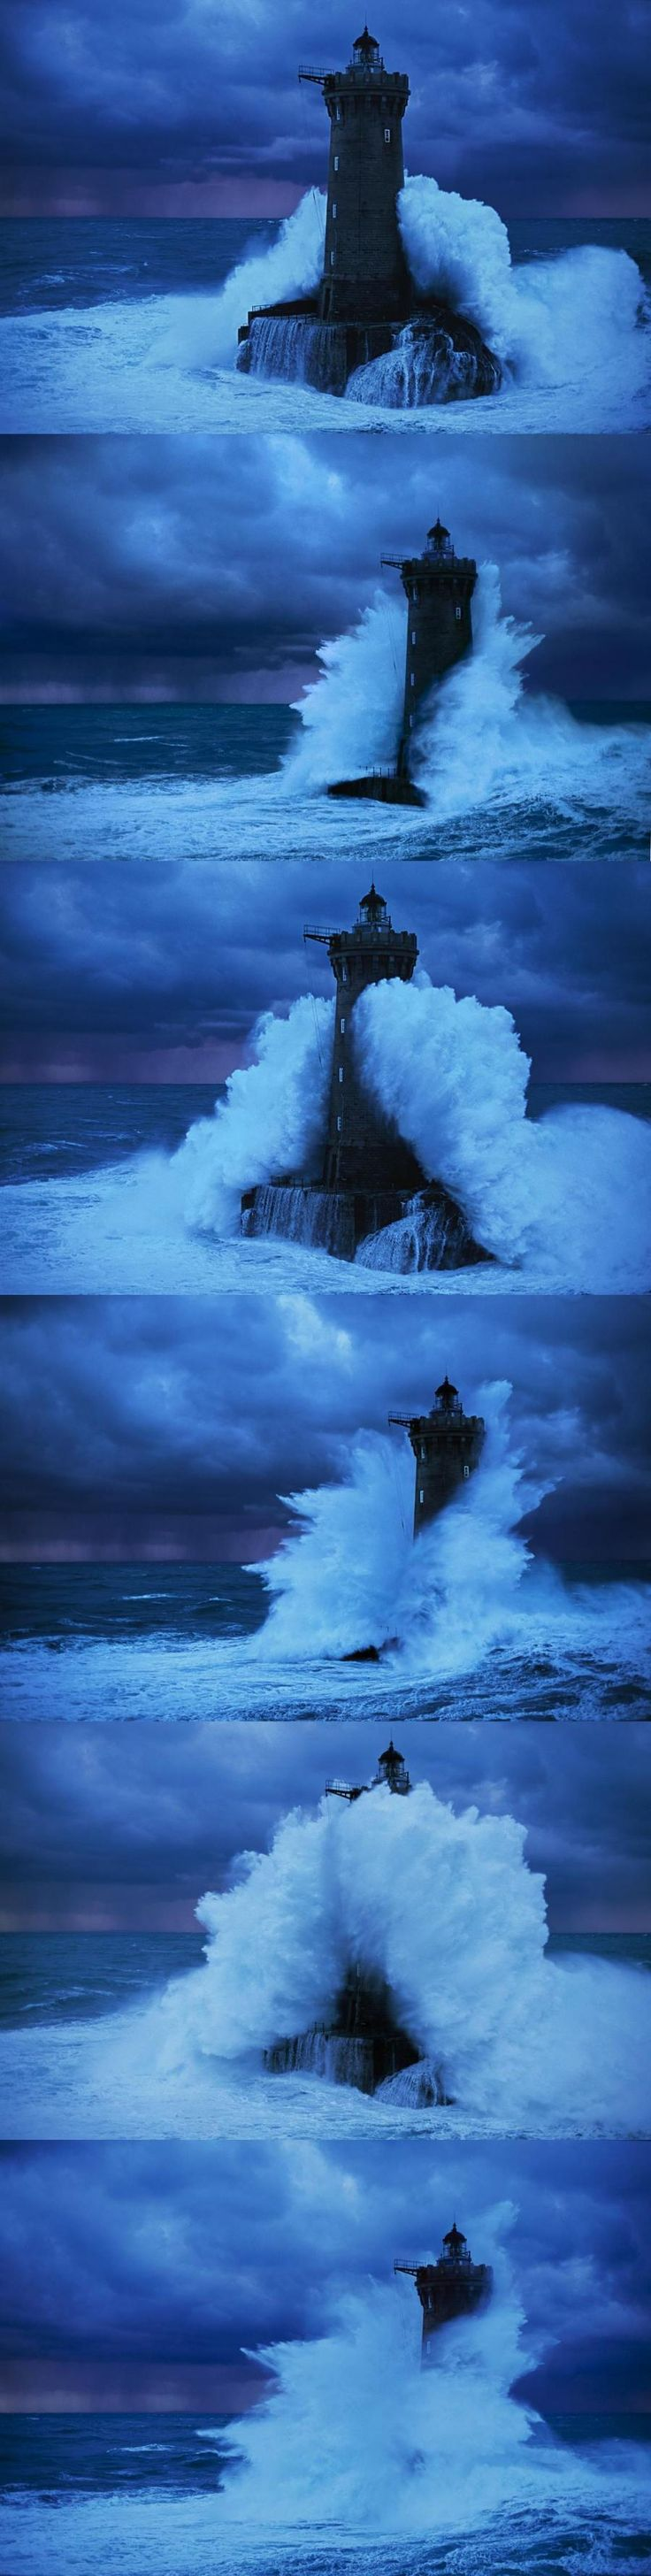 Storm waves engulfing a lighthouse, photo by...Jean Guichard.